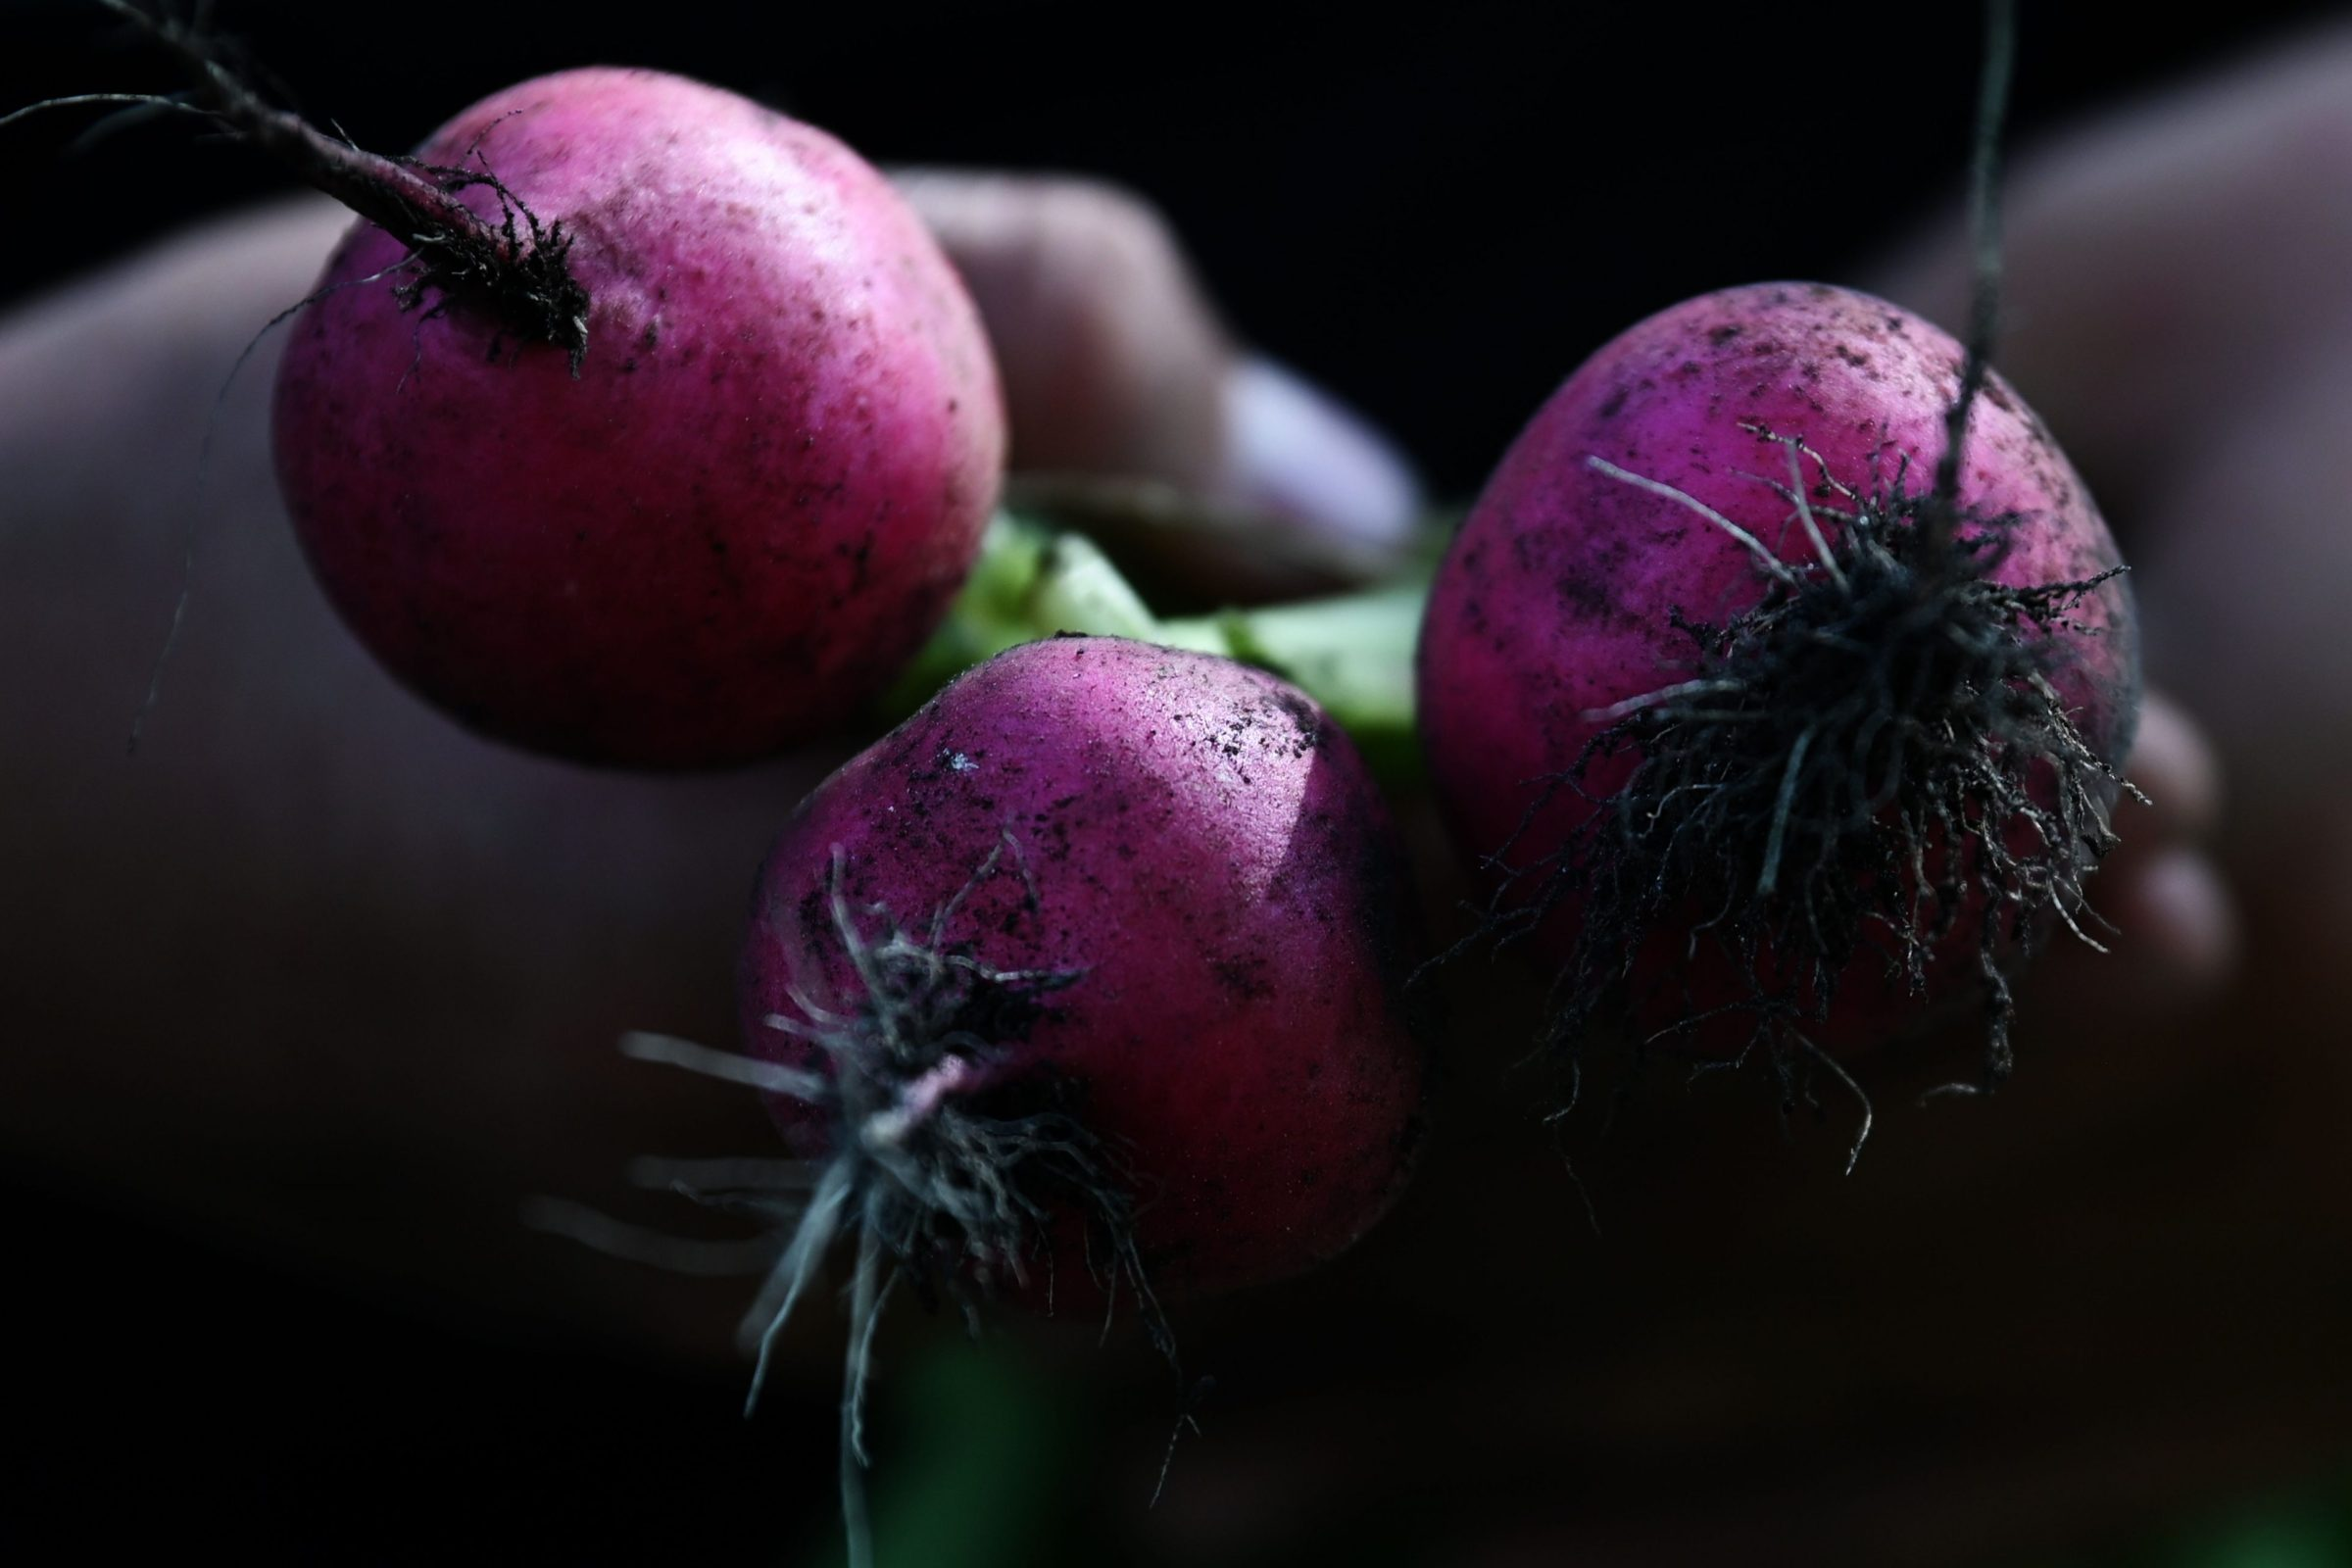 Some radishes, seen in close up.